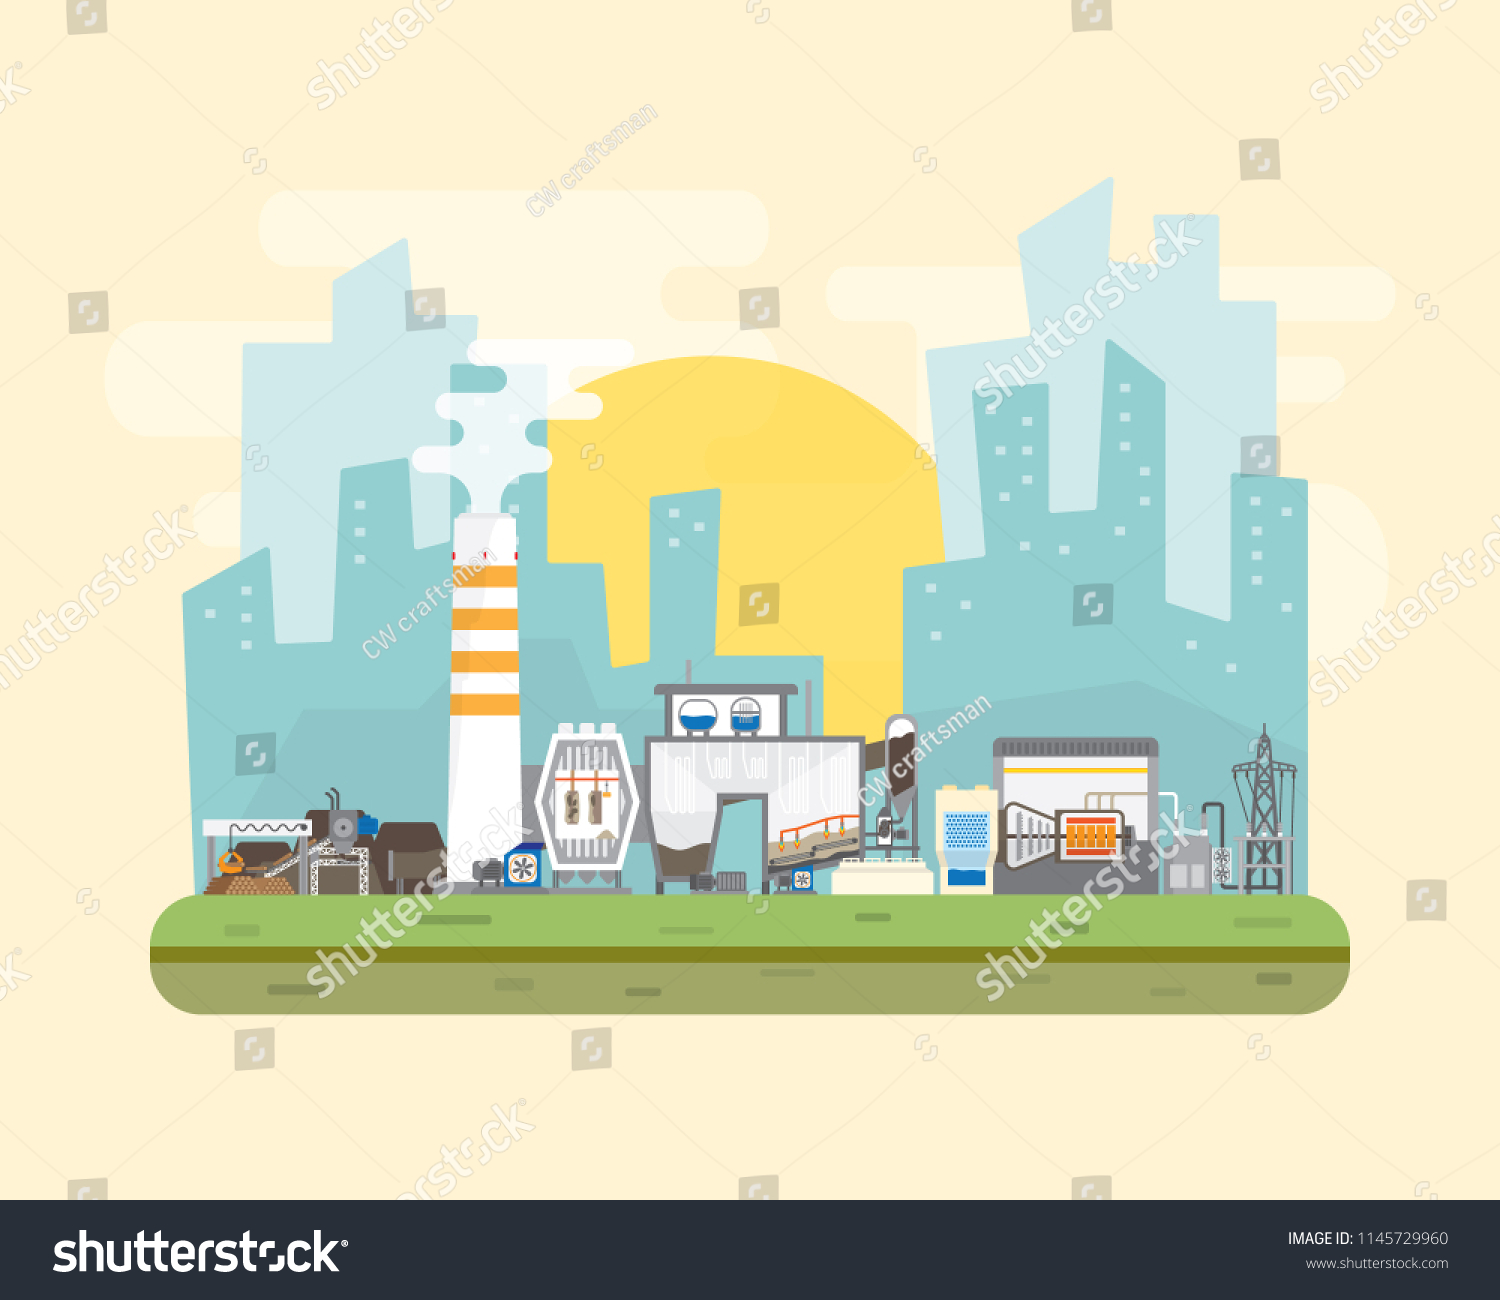 Biomass Energy Biomass Power Plant Simple Stock Vector (Royalty Free ...